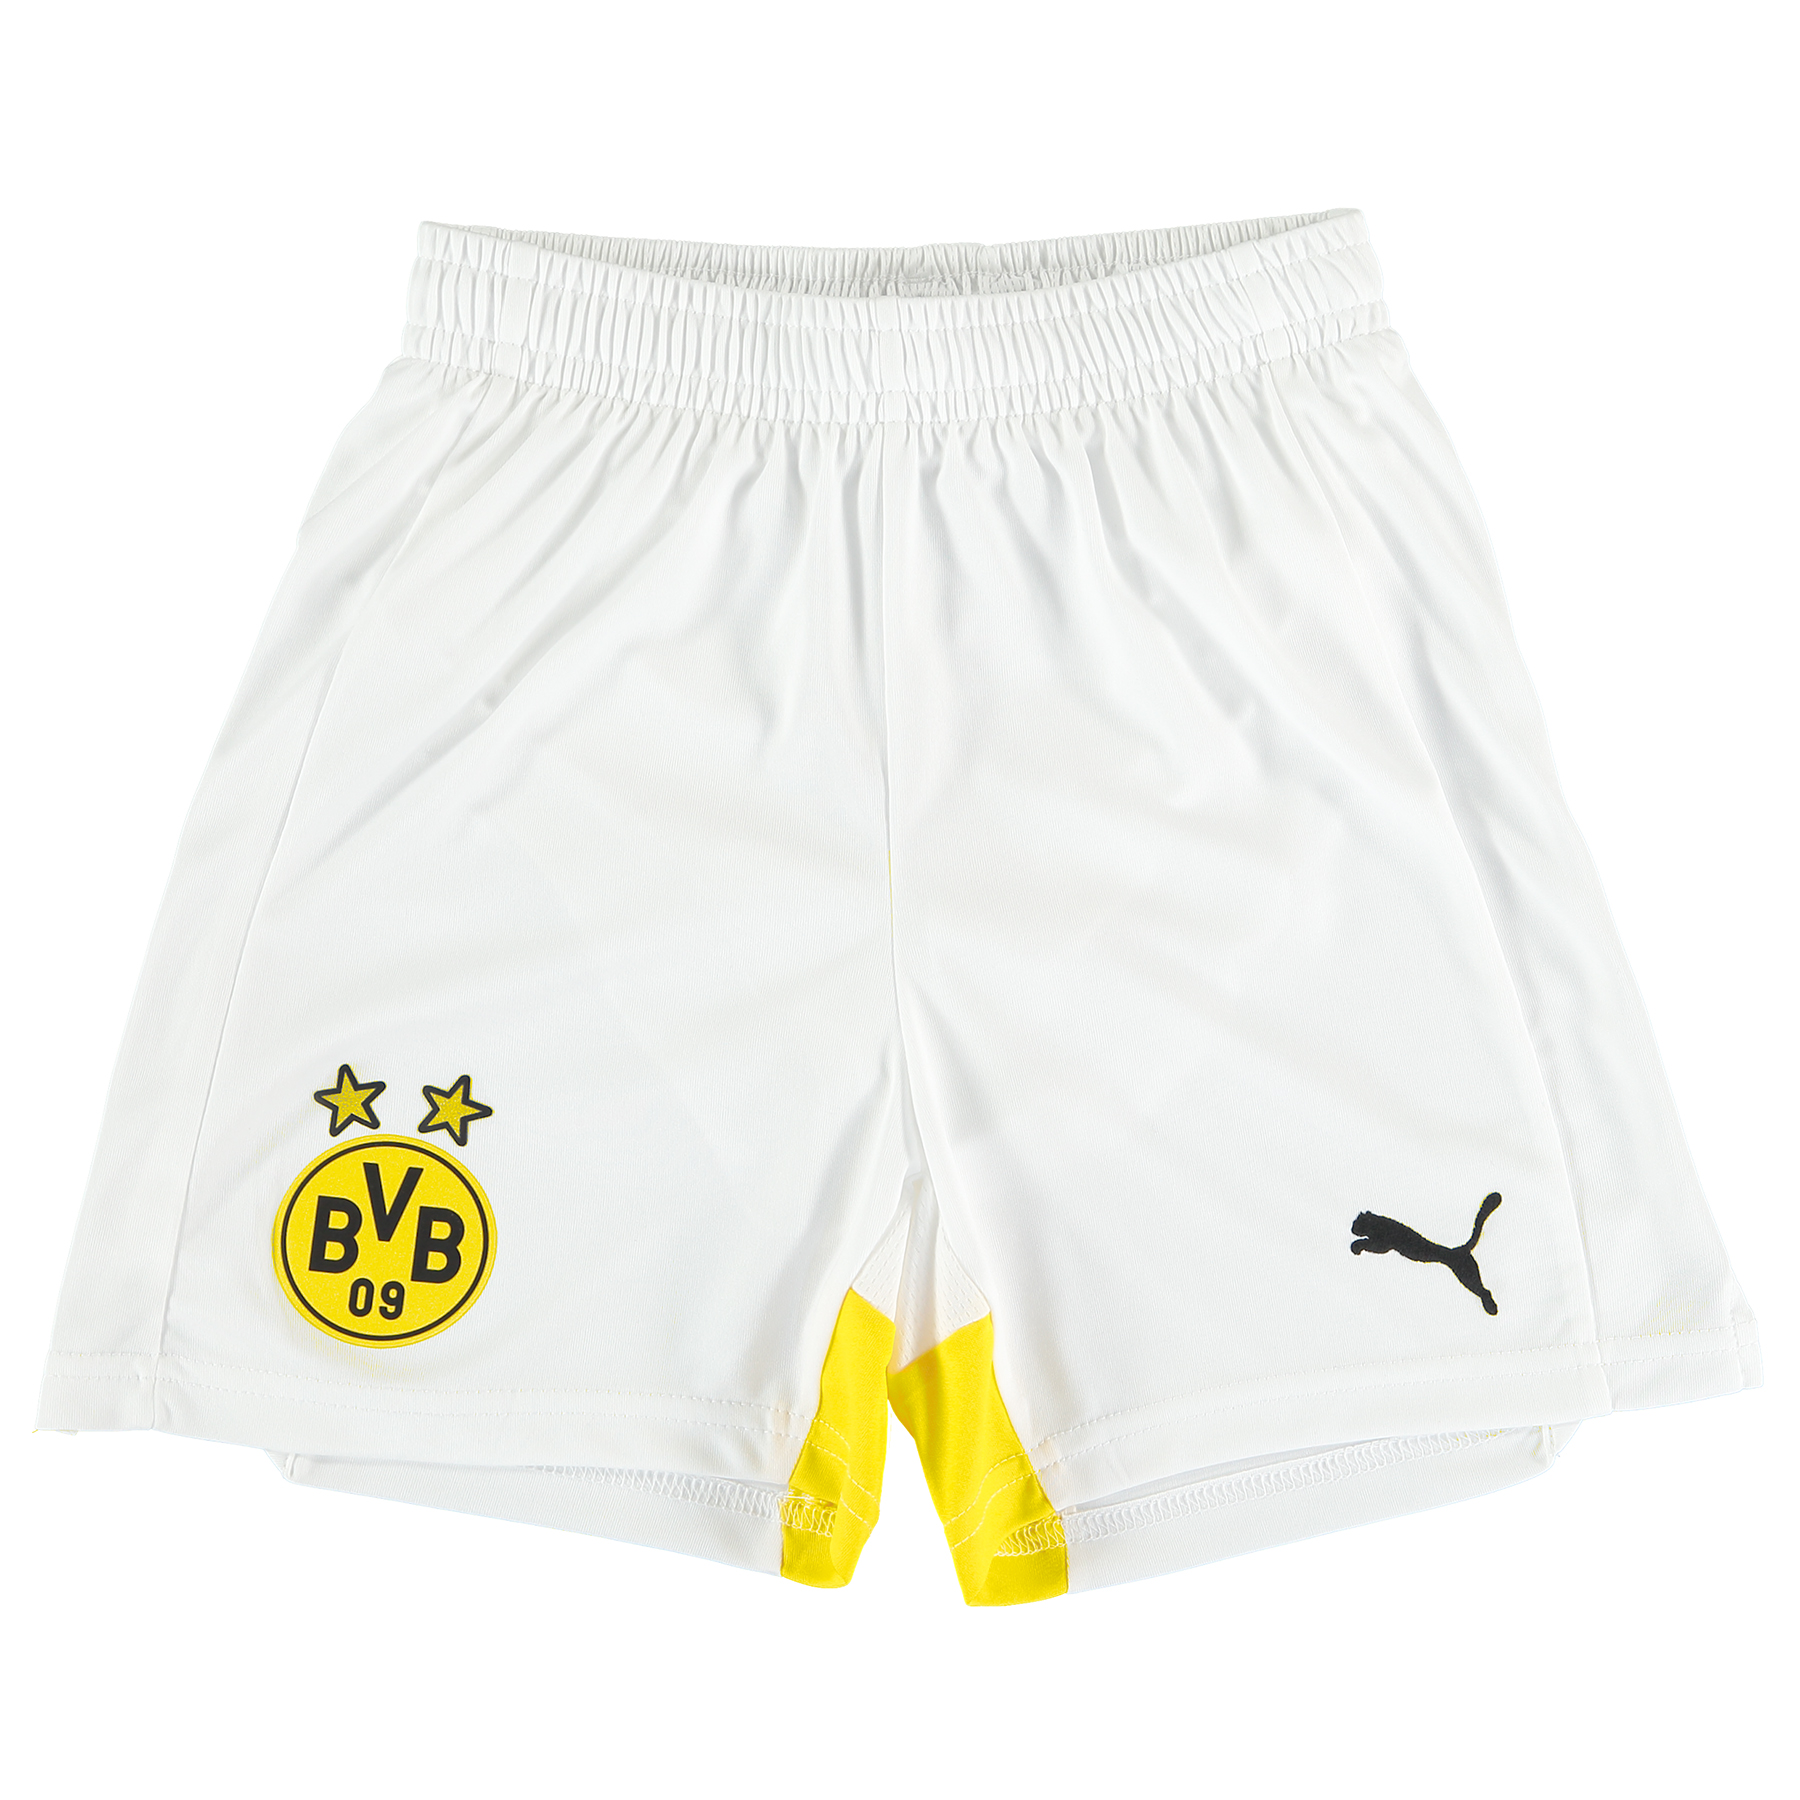 BVB Third Shorts 2015/16 - Kids White